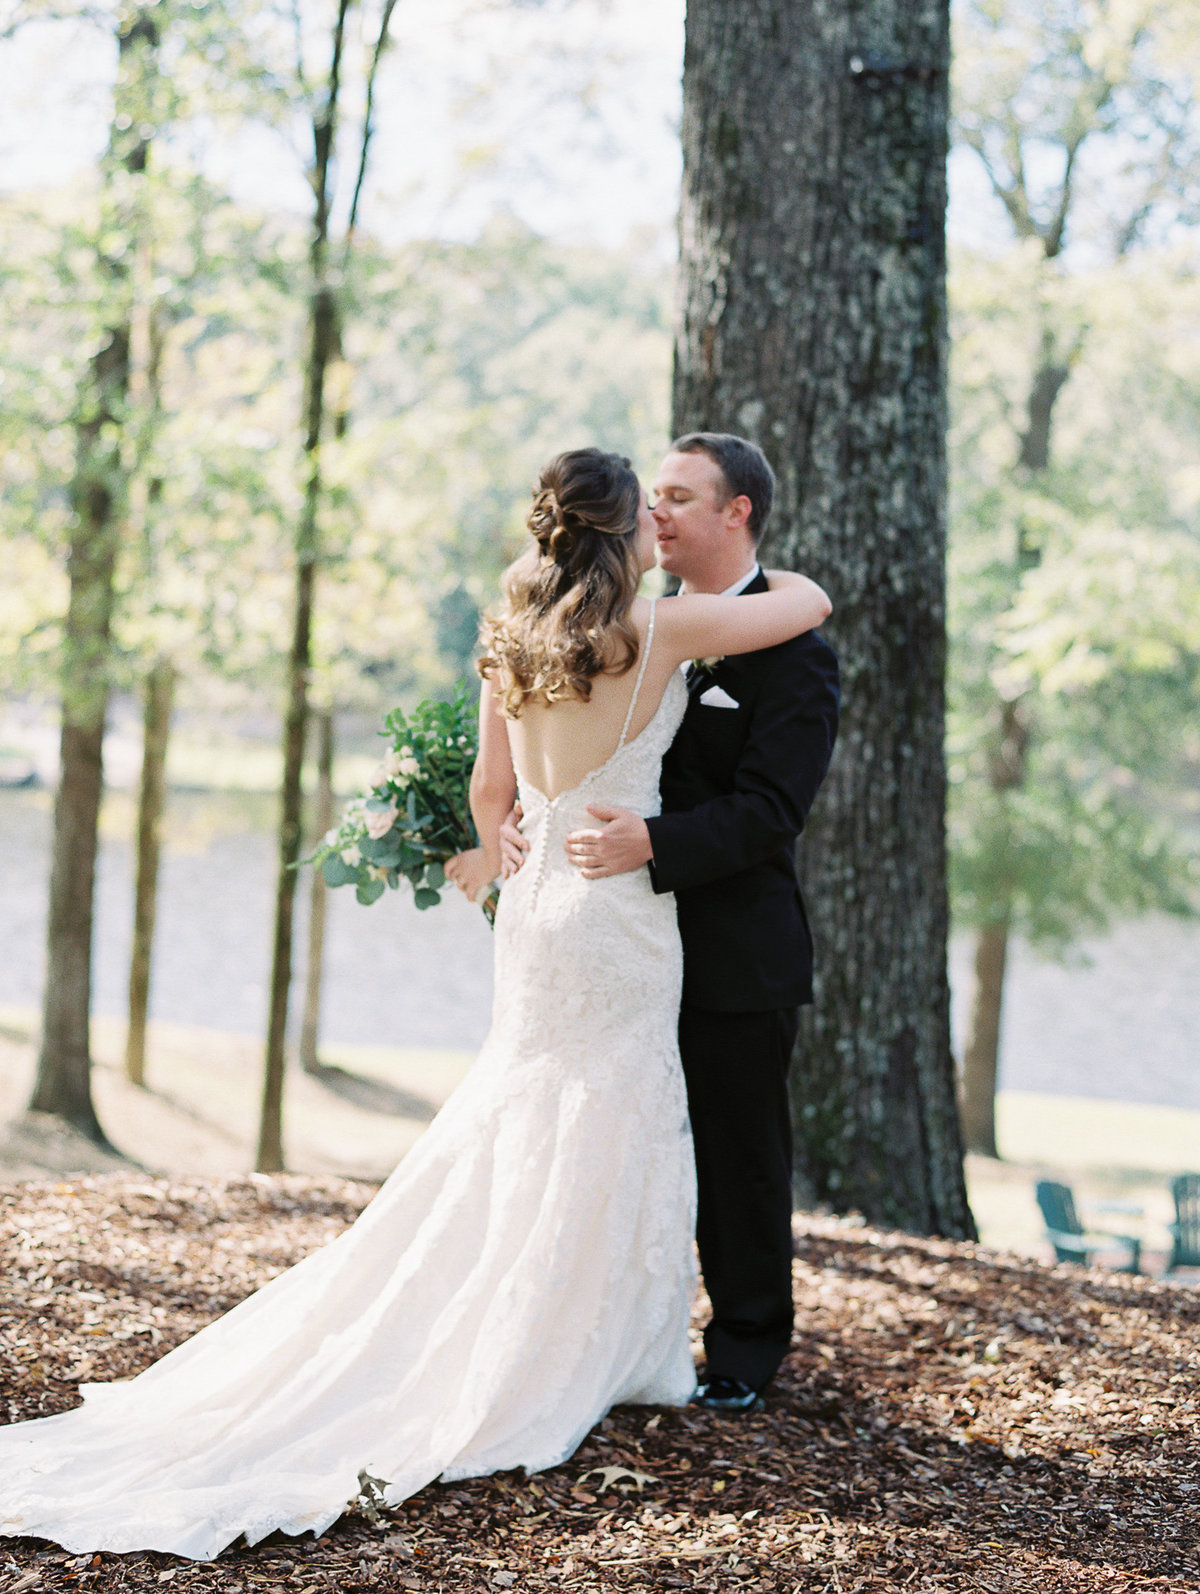 679_Anne & Ryan Wedding_Lindsay Vallas Photog